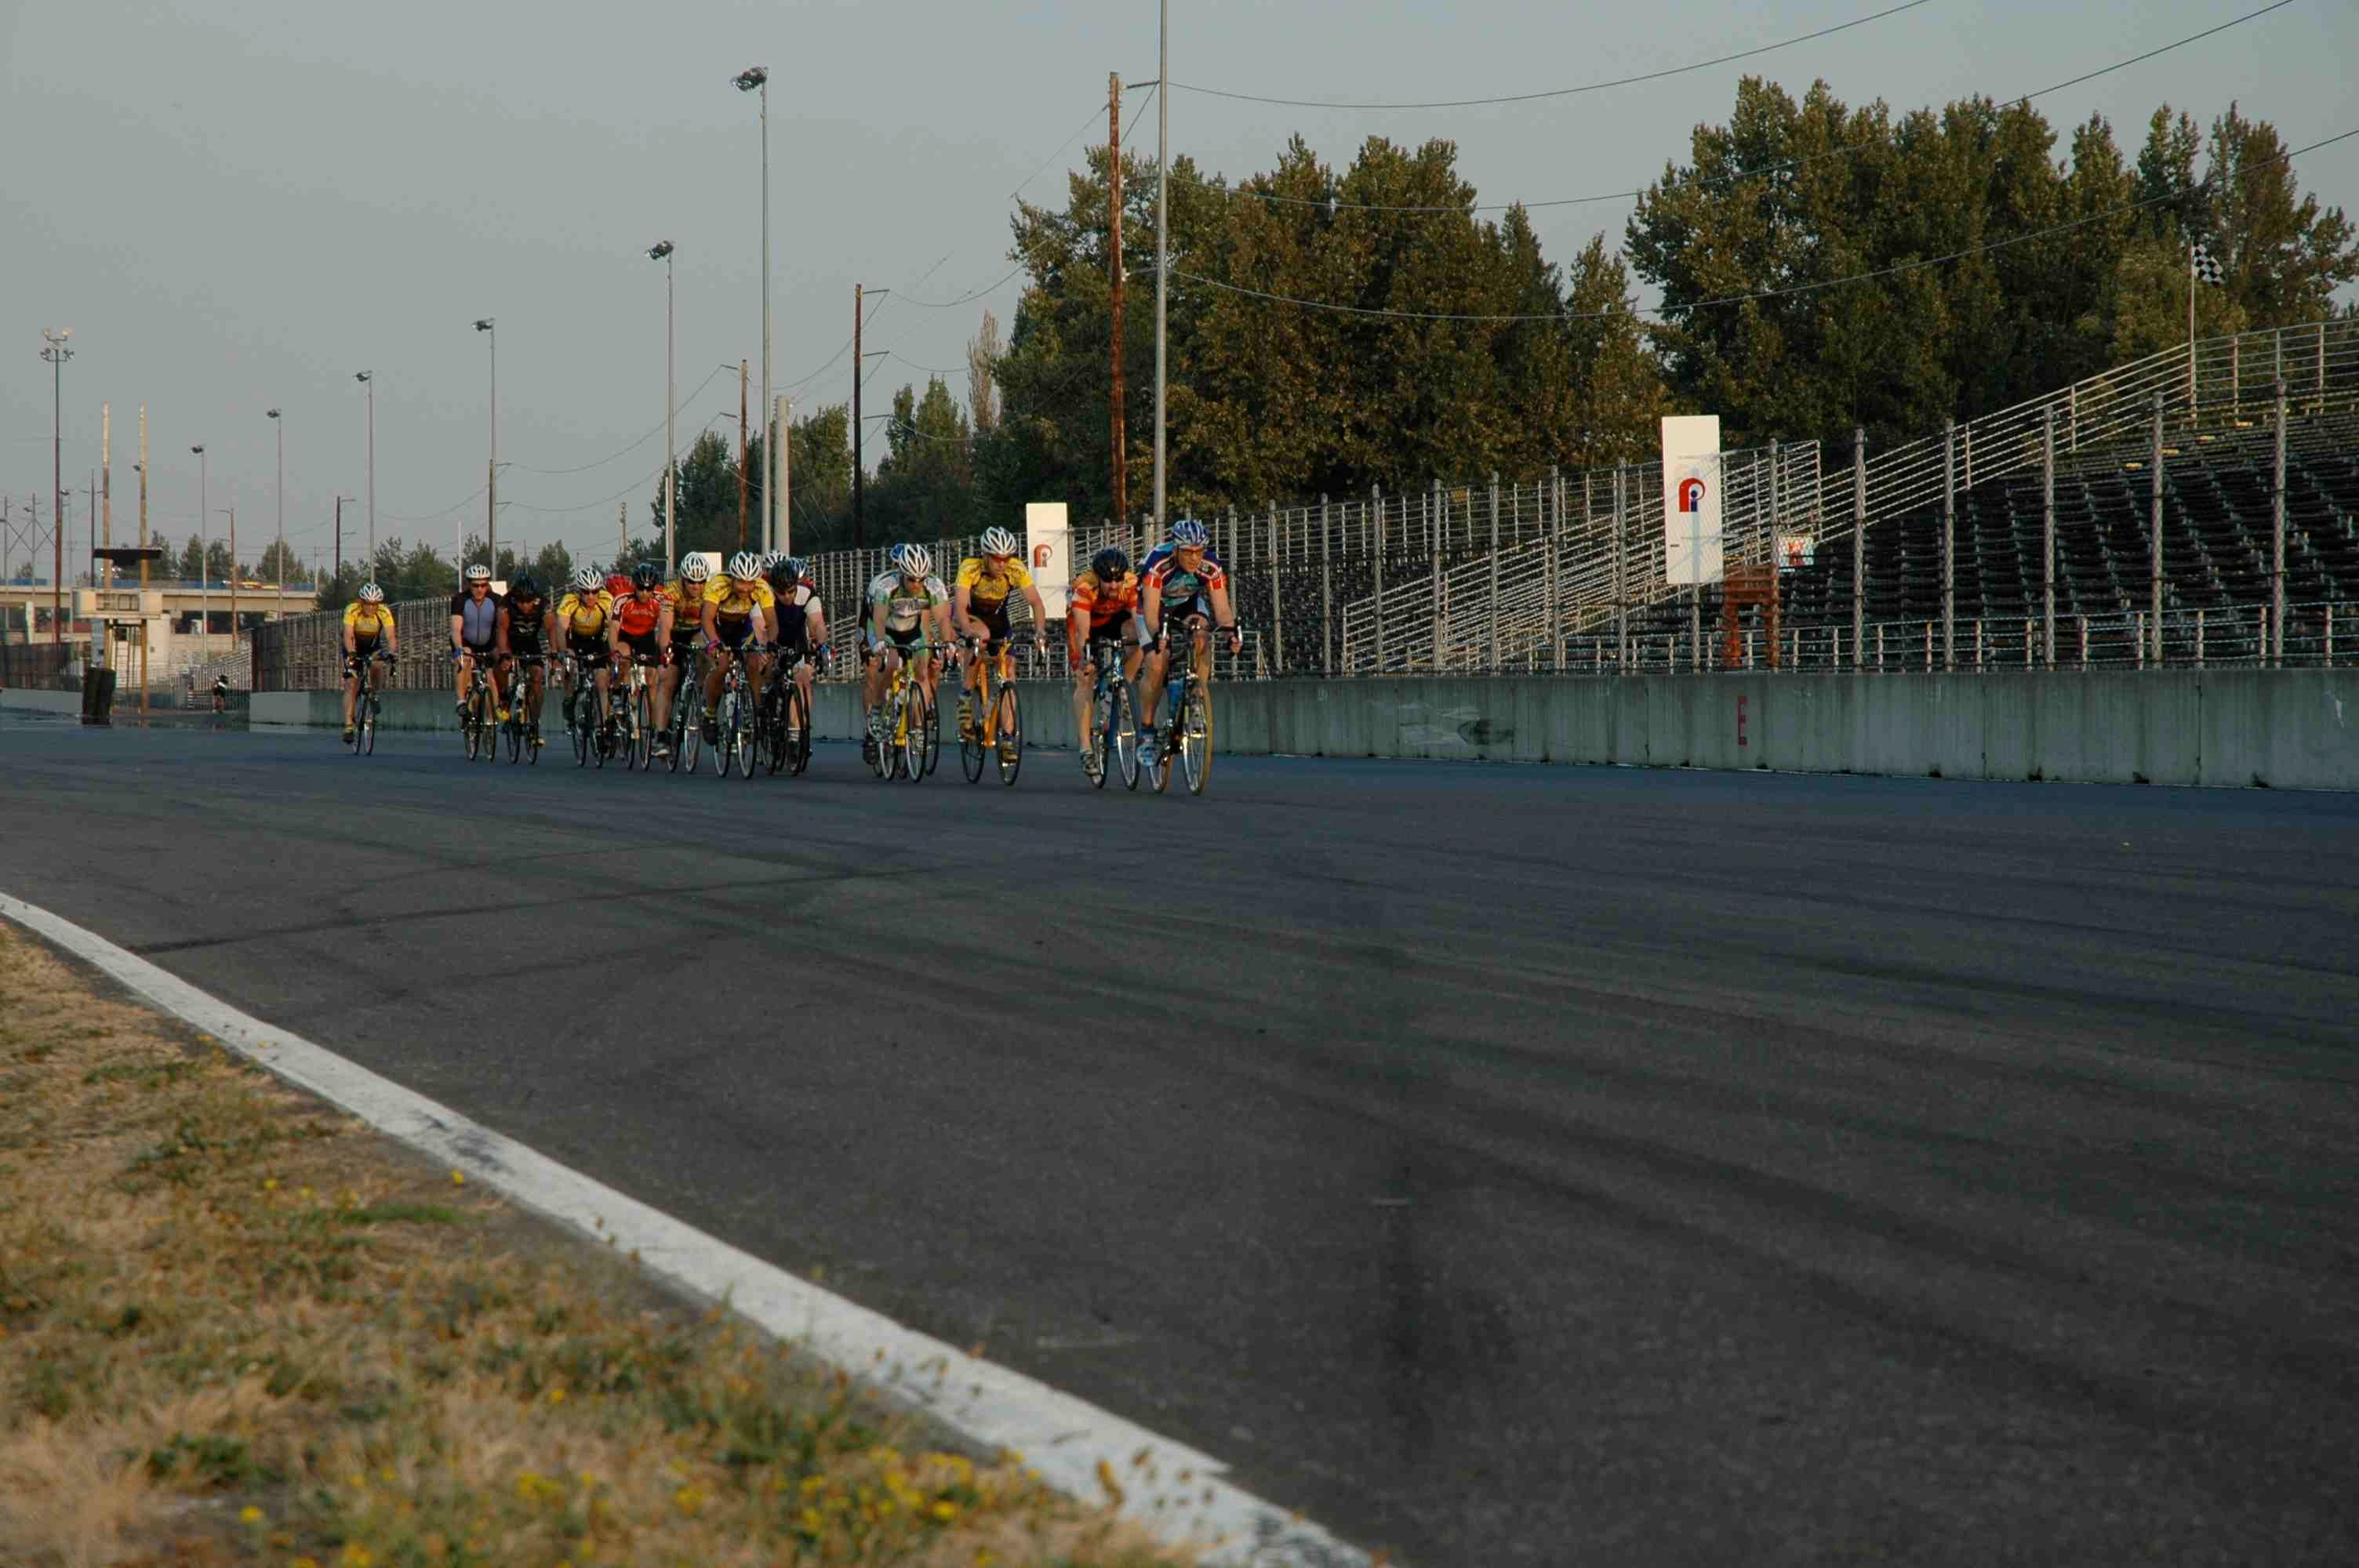 Action on the Portland International Raceway.